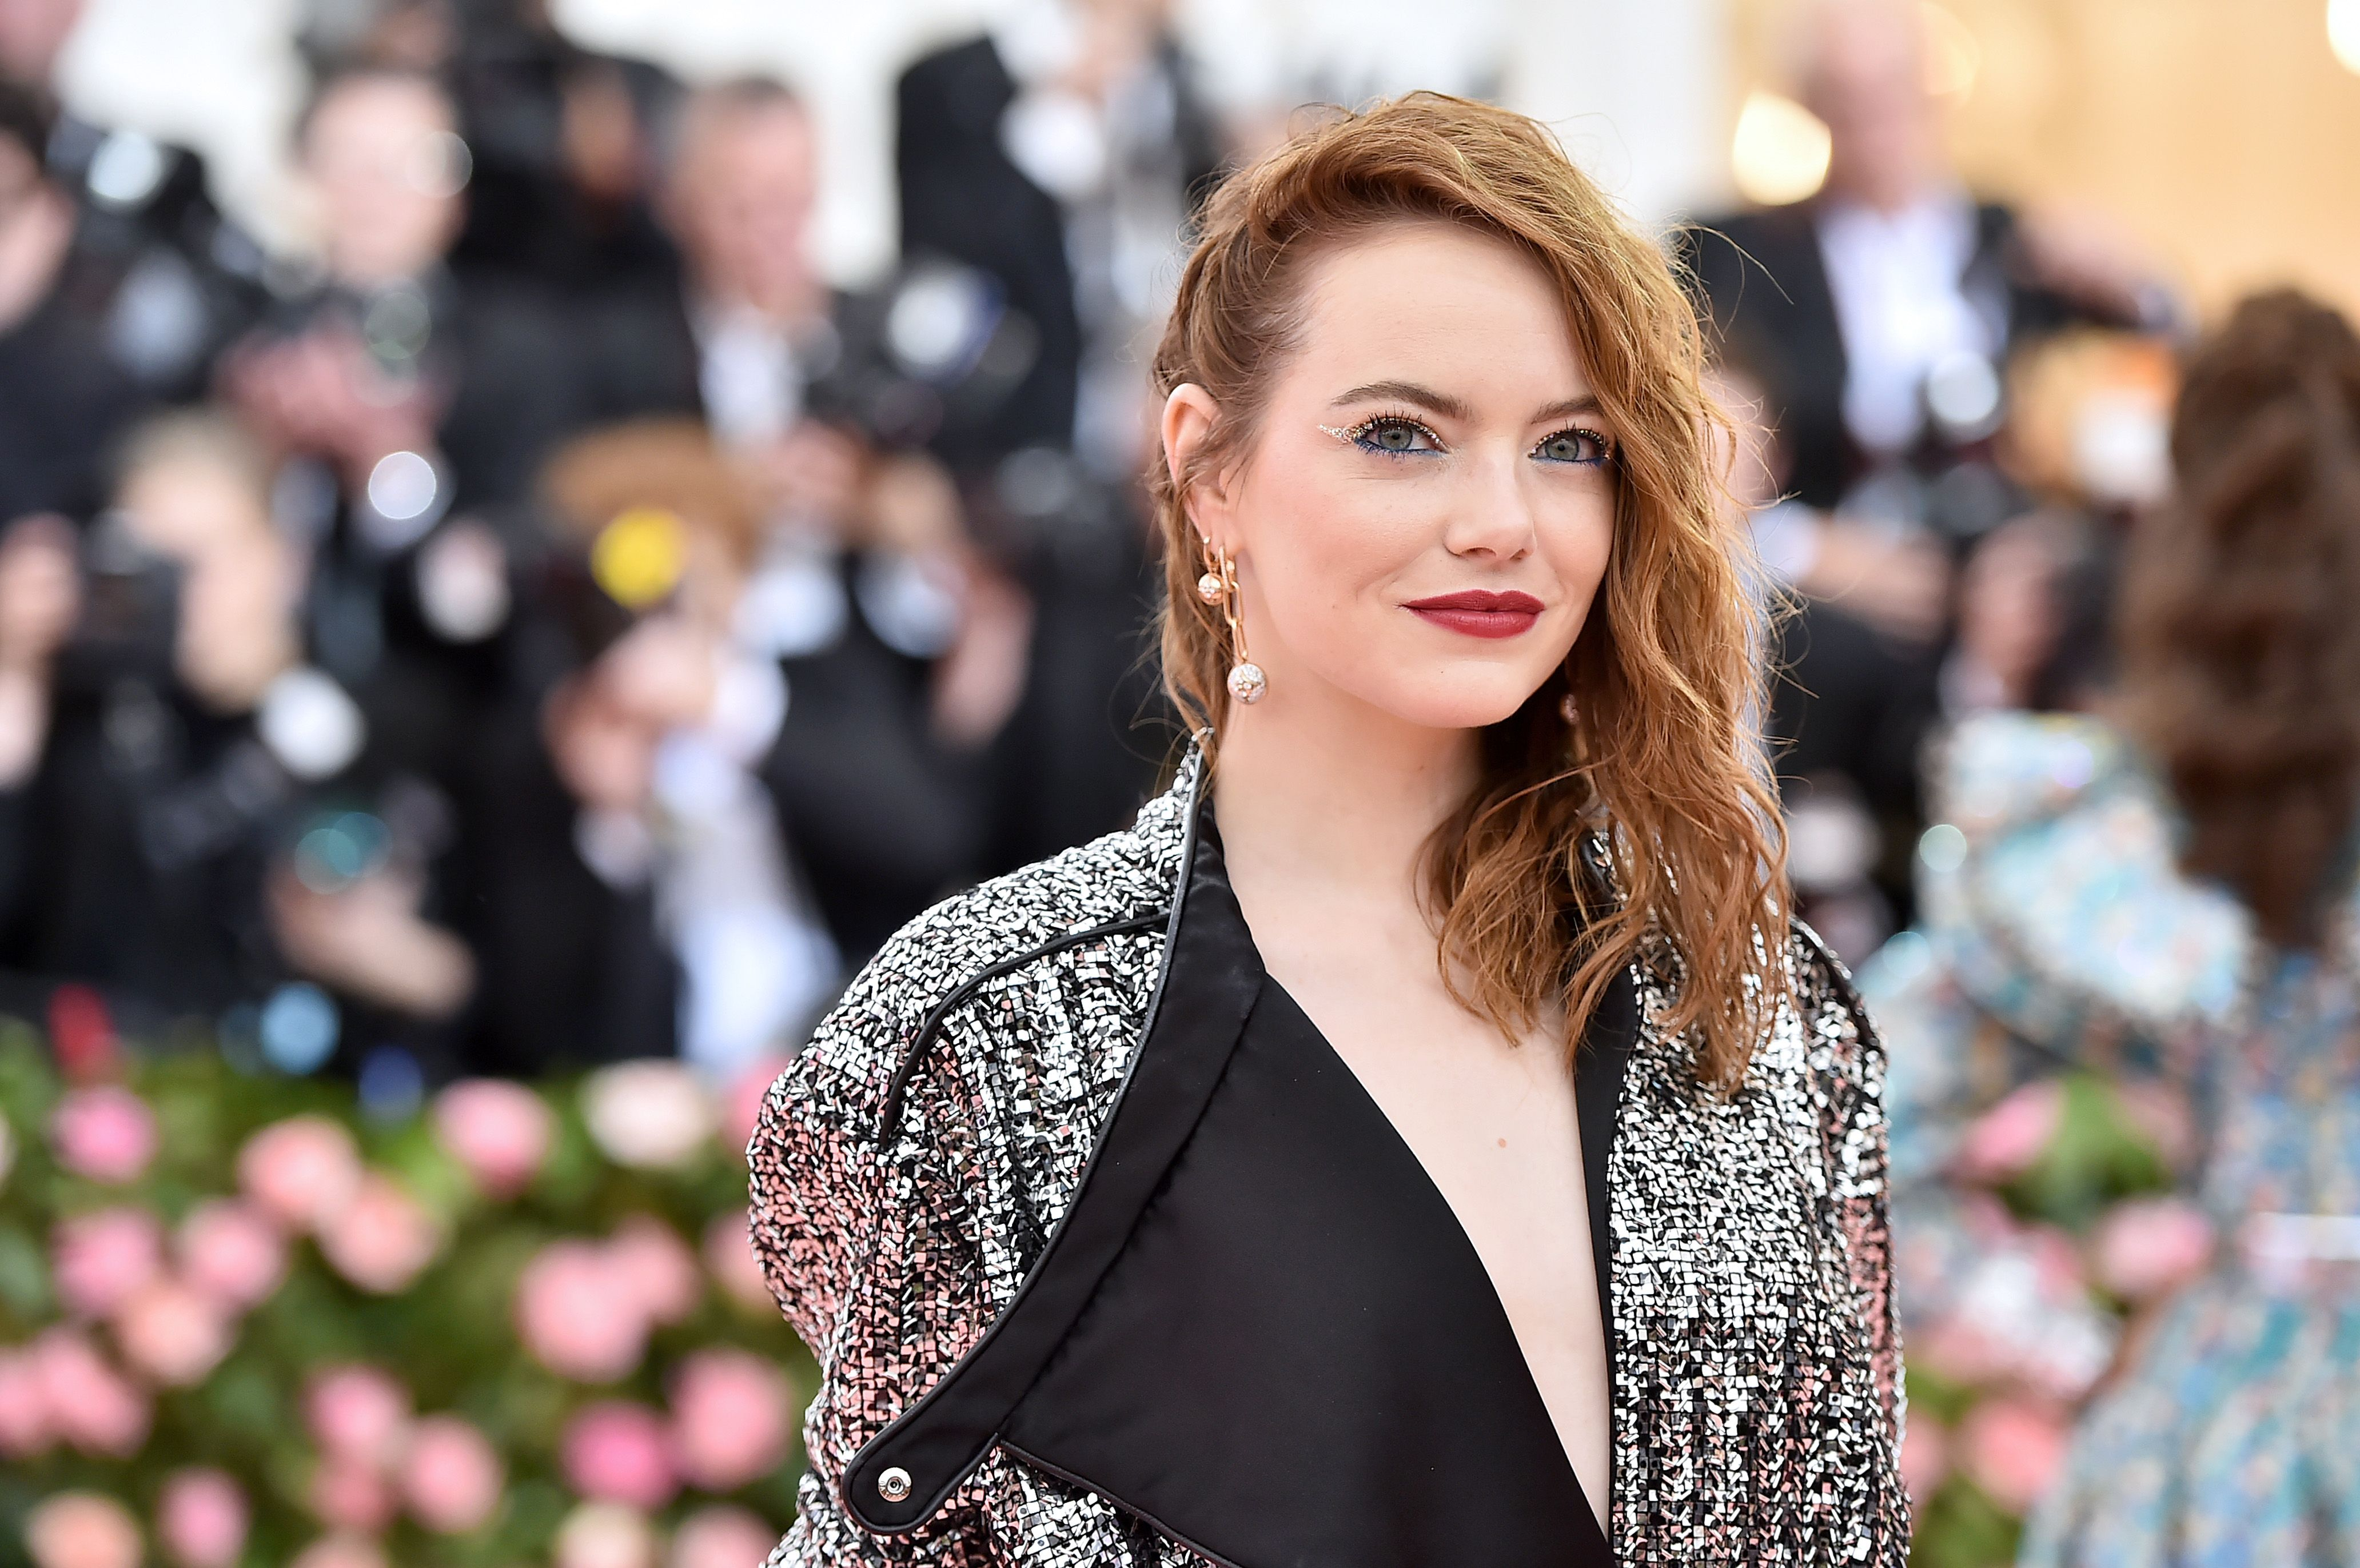 Emma Stone met her idol Baby Spice during the Spice Girls tour